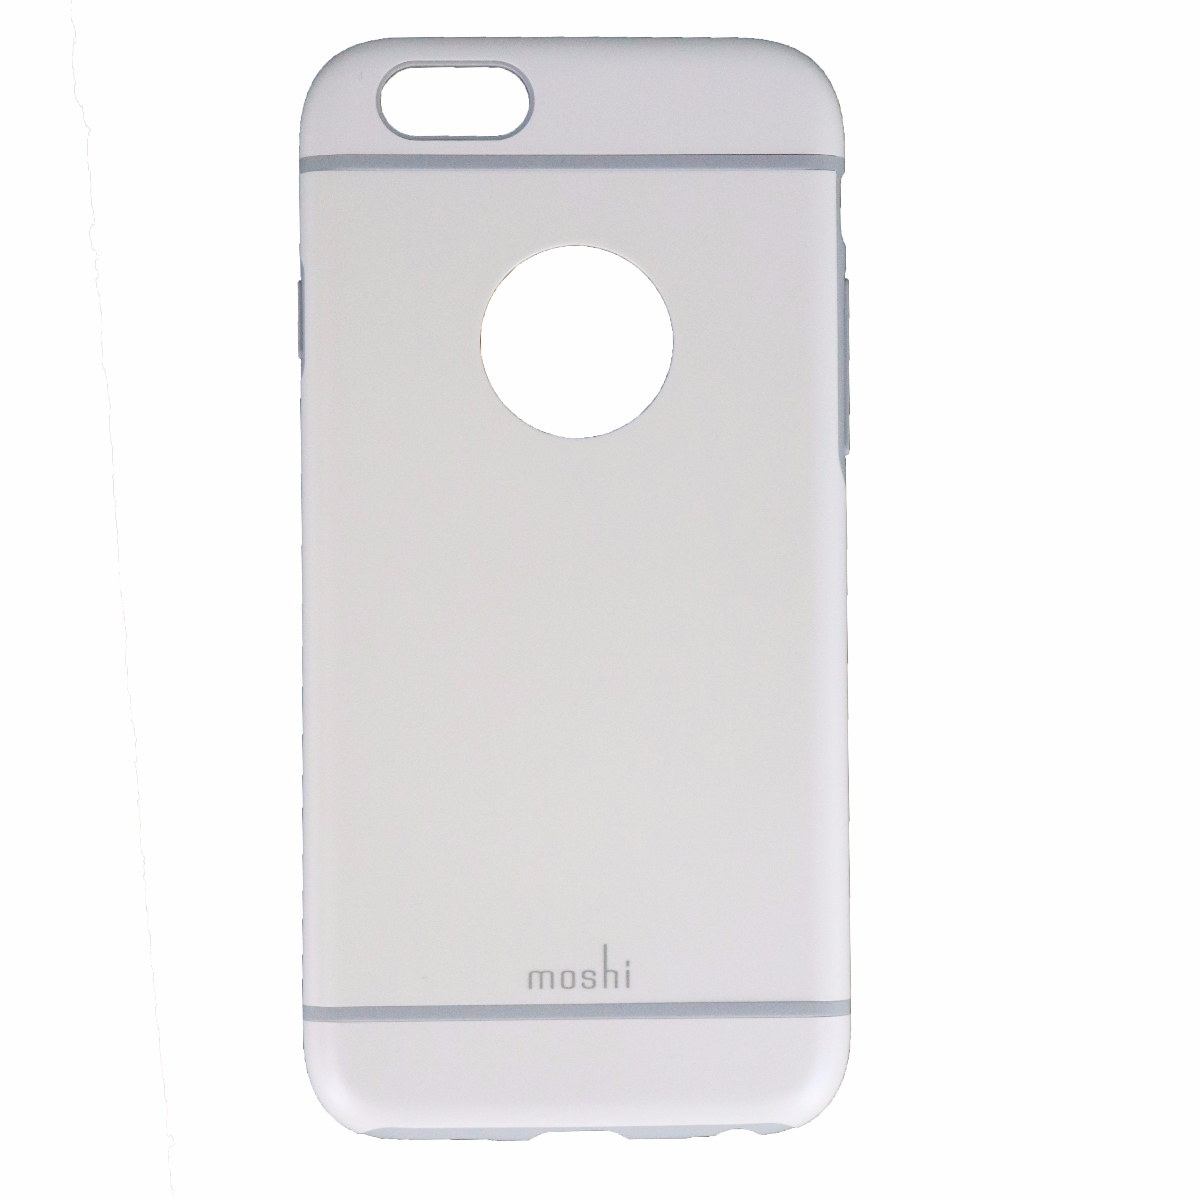 Moshi iGlaze Ultra Slim Protective Case Cover for iPhone 6s 6 Case - White